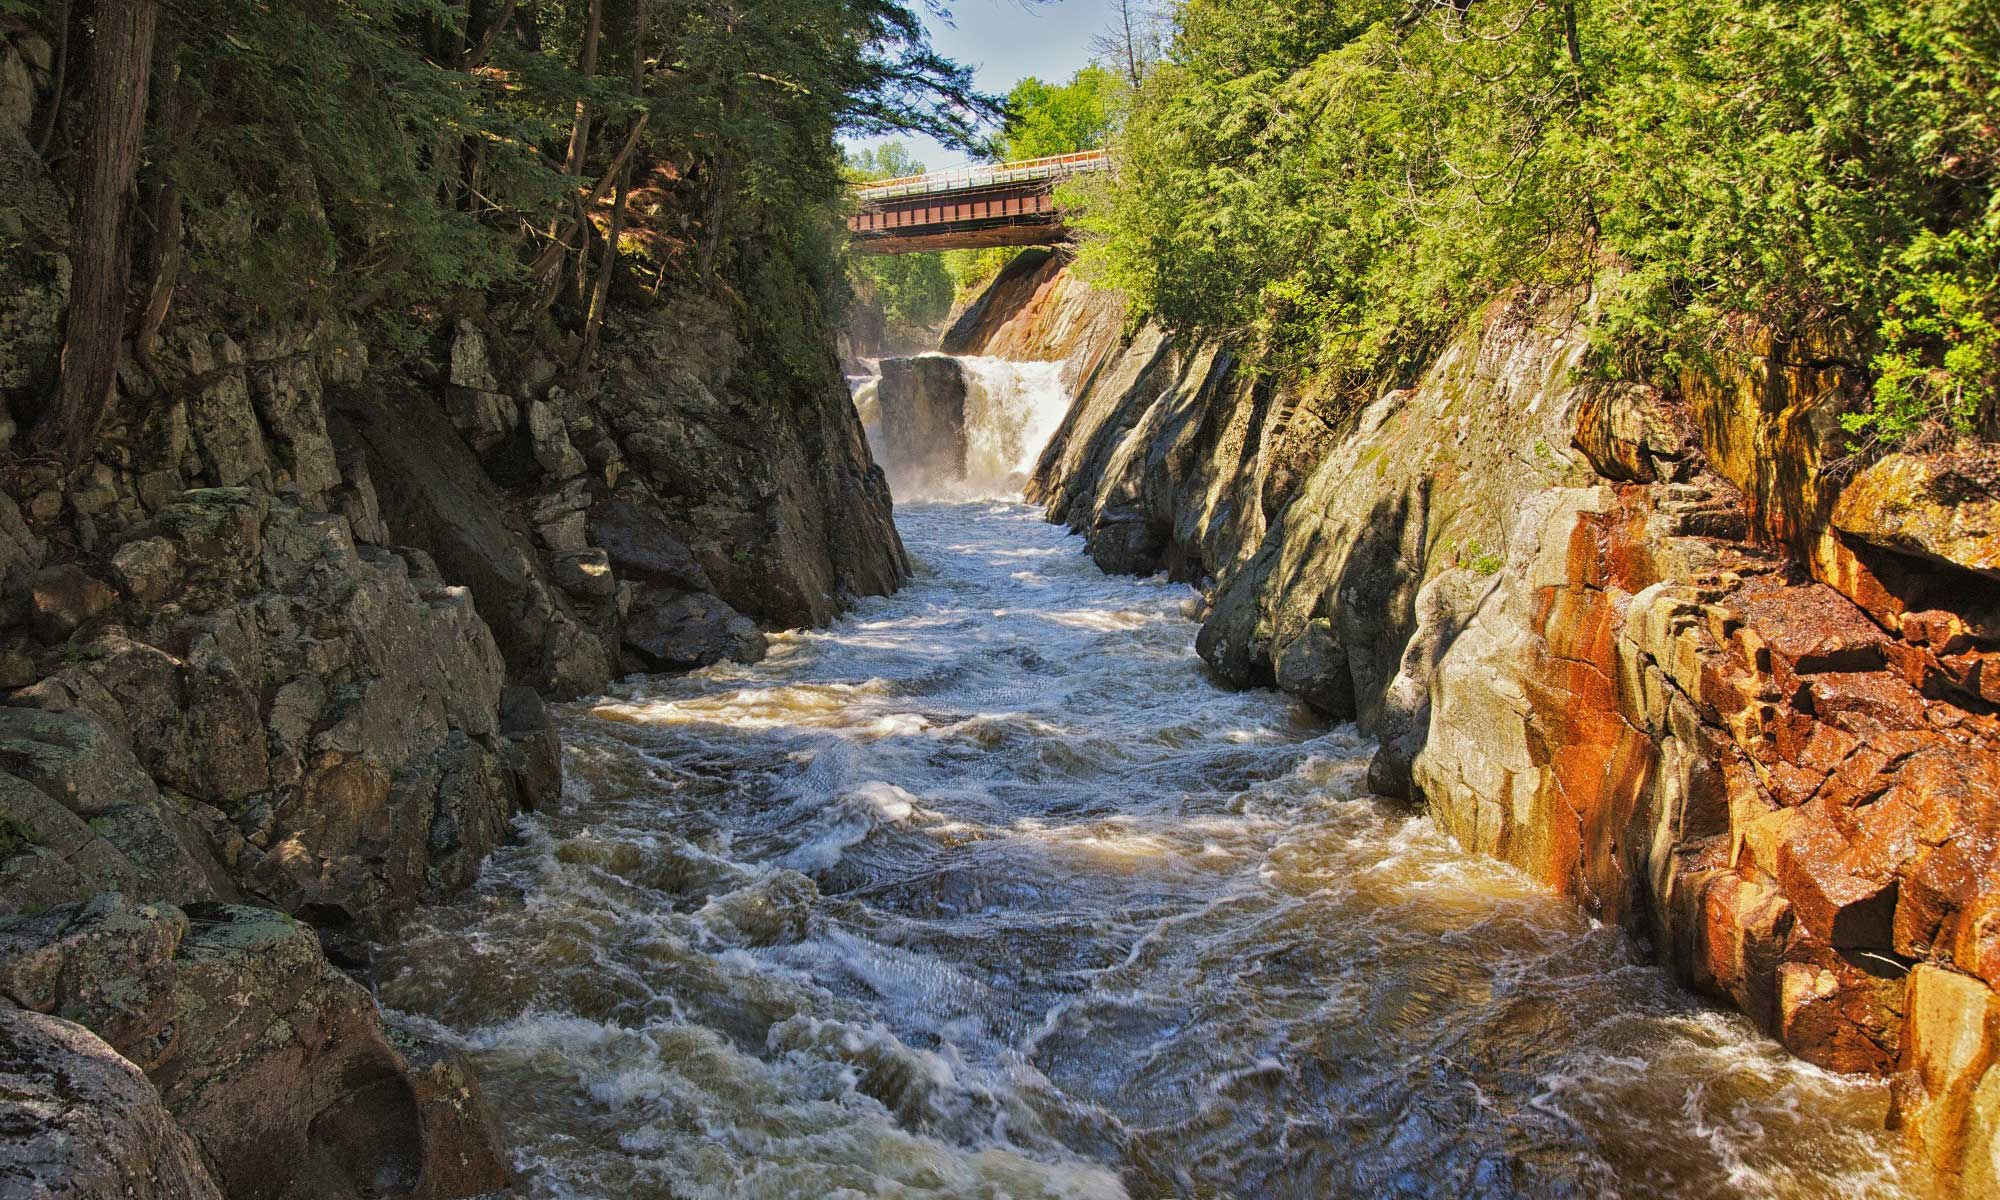 Ausable River near Whiteface Mt, NY